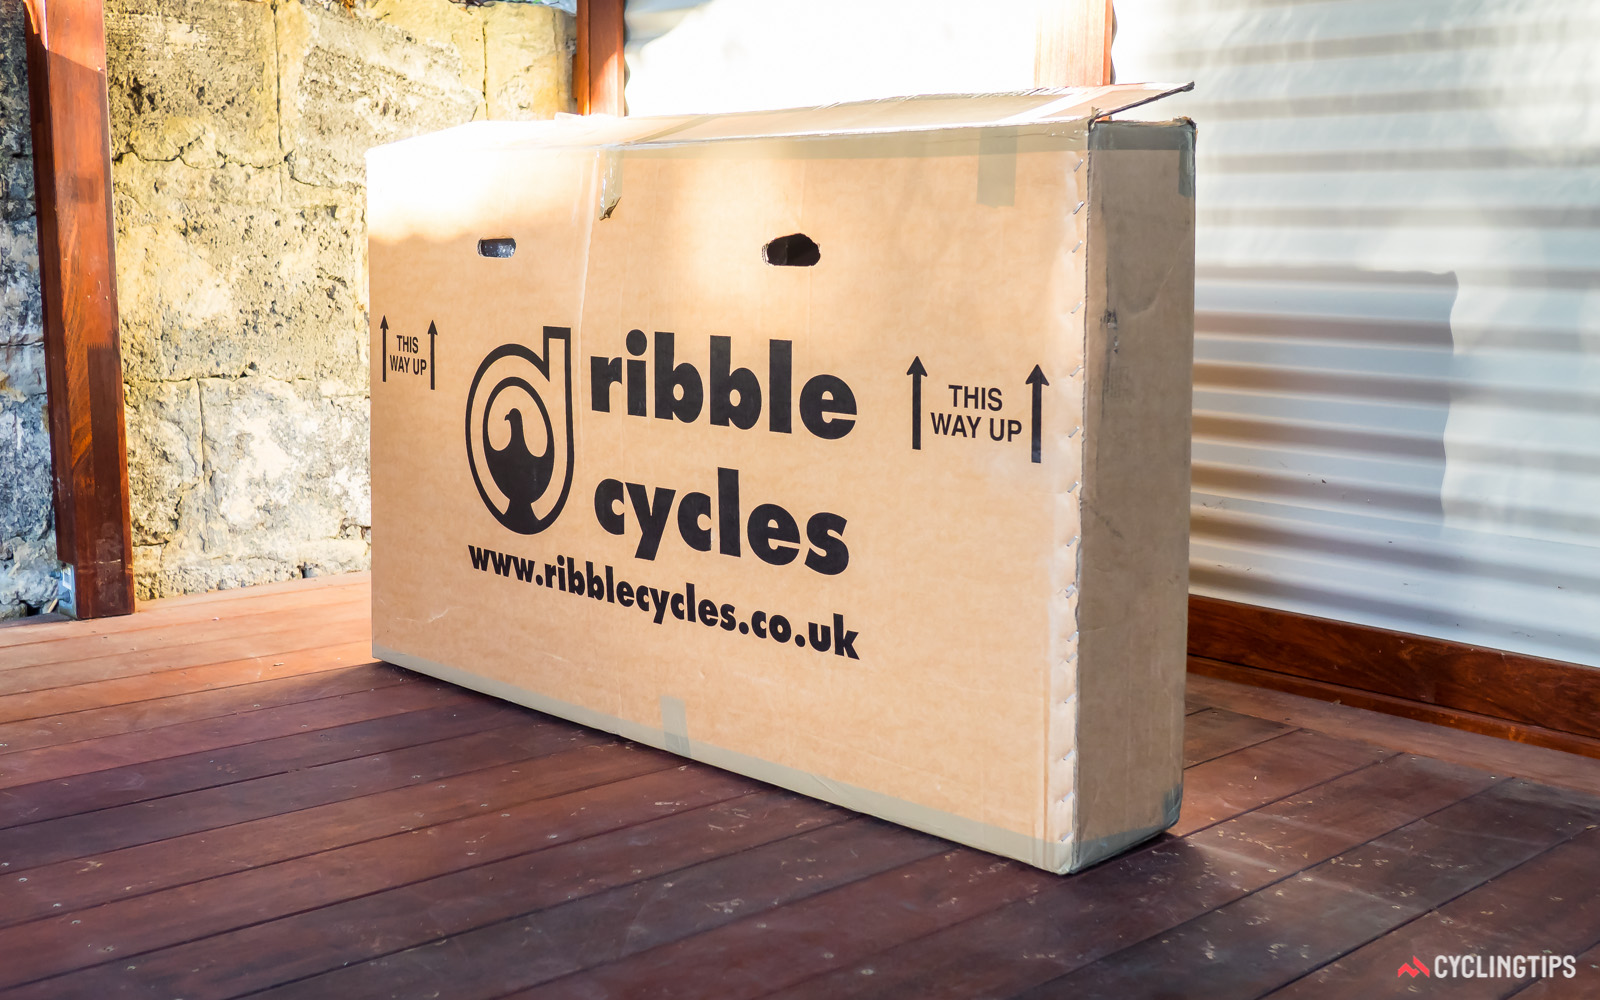 This is what buyers can expect to arrive at their door when they buy a bike from Ribble Cycles.